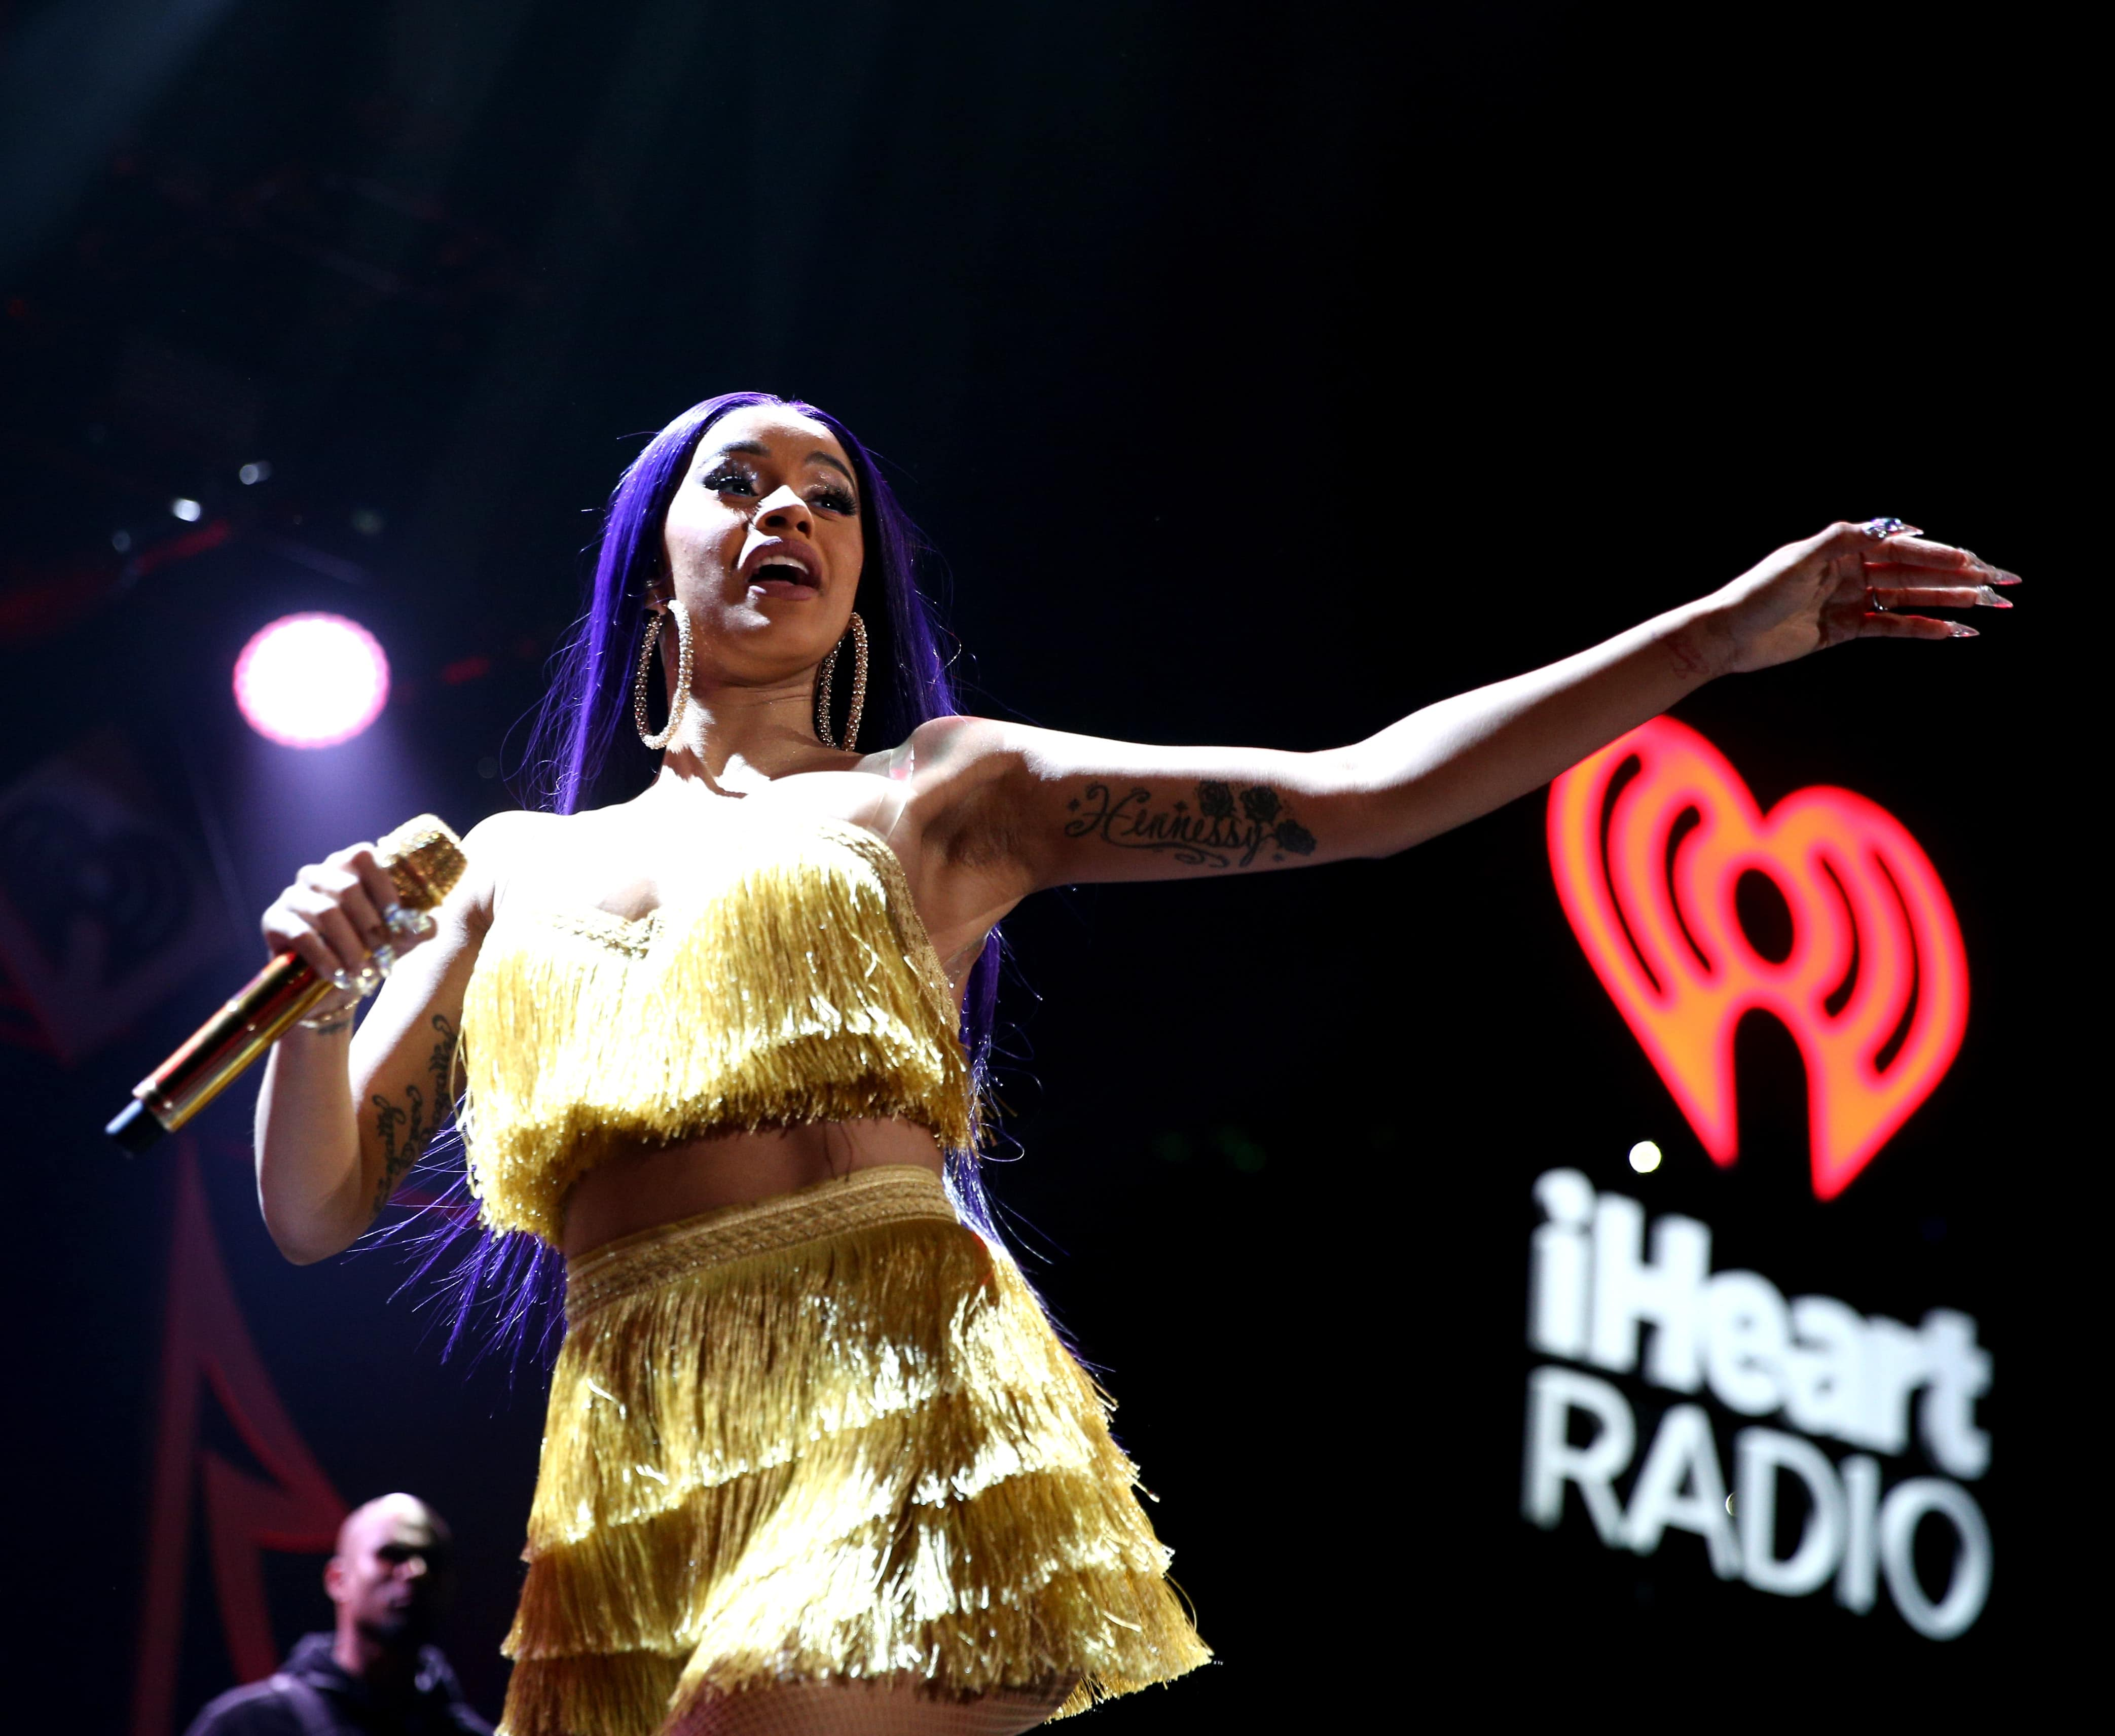 Cardi B Confirms She's Releasing a New Album in 2019